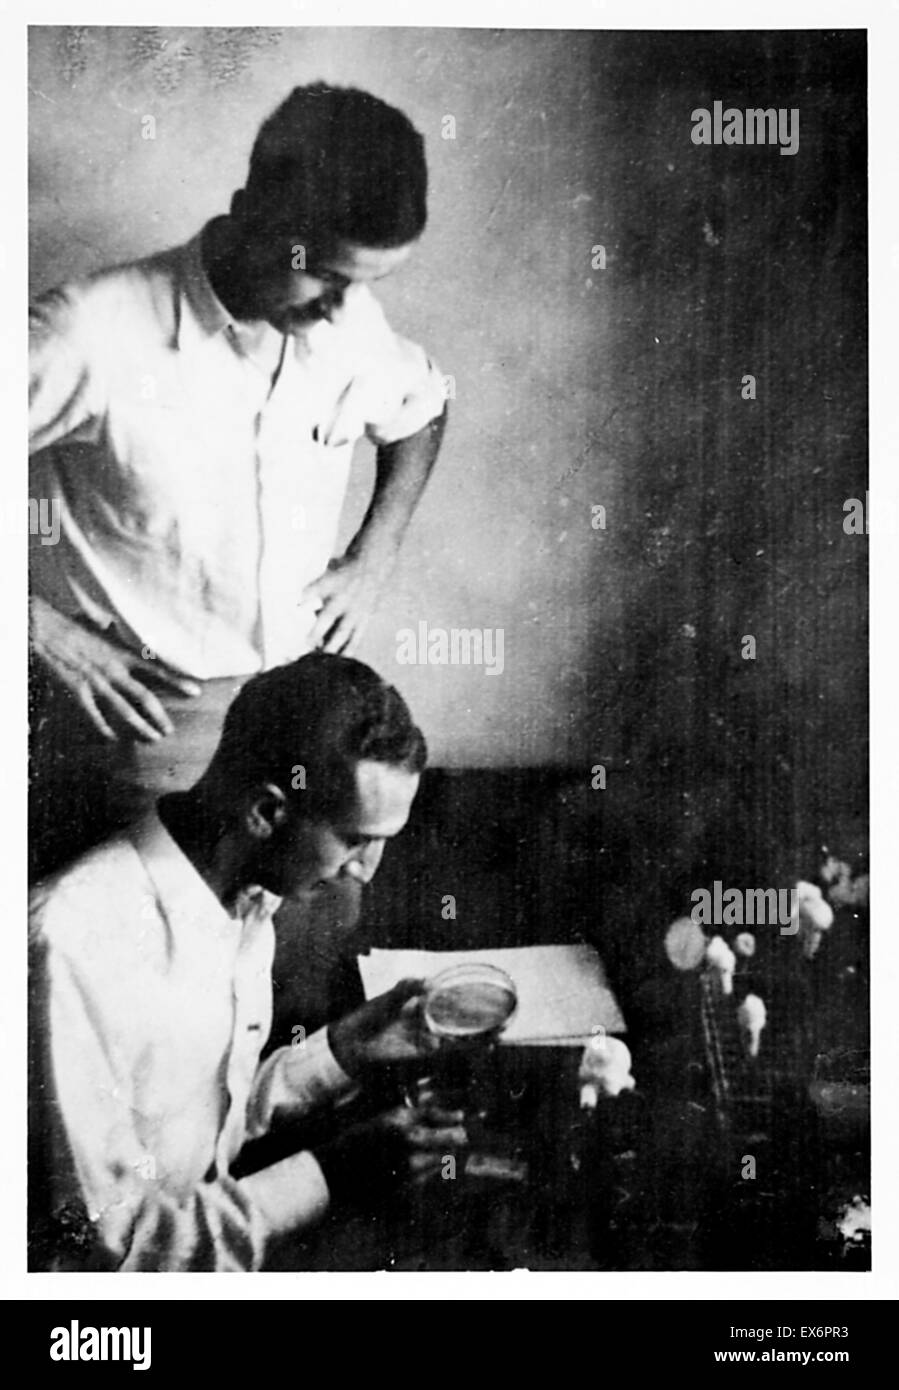 Max Delbruck and Salvador Luria at Cold Spring Harbor Laboratory 1941. Salvador Edward Luria (1912 – 1991) Italian genetics researcher and microbiologist, later a naturalized American citizen. He won the Nobel Prize in Physiology or Medicine in 1969 Stock Photo